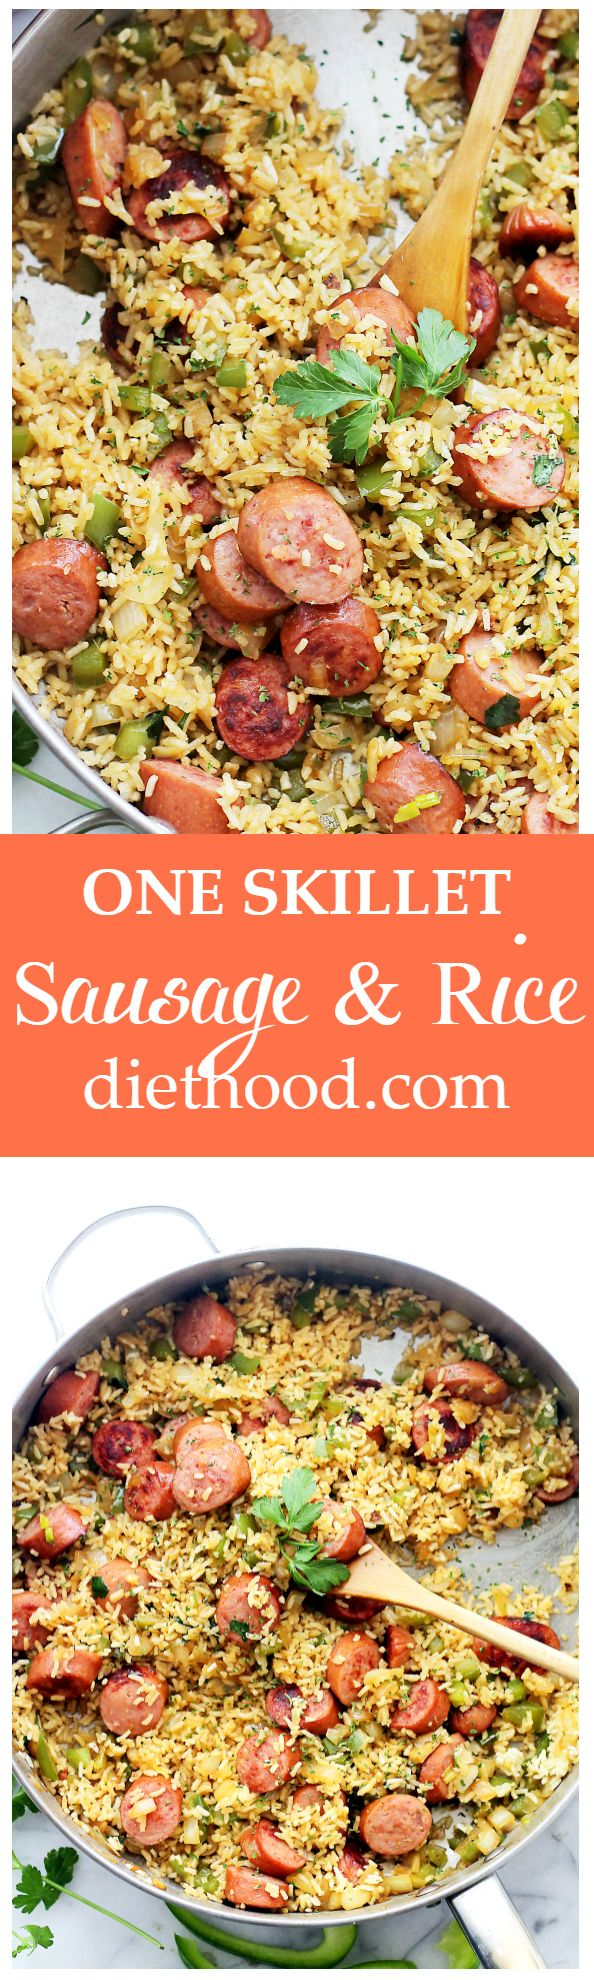 One-Skillet Sausage and Rice - Easy, 30-minute, one-skillet meal with smoked turkey sausage, fluffy white rice and flavorful veggies. #MinuteMeals #ad Get the recipe on diethood.com